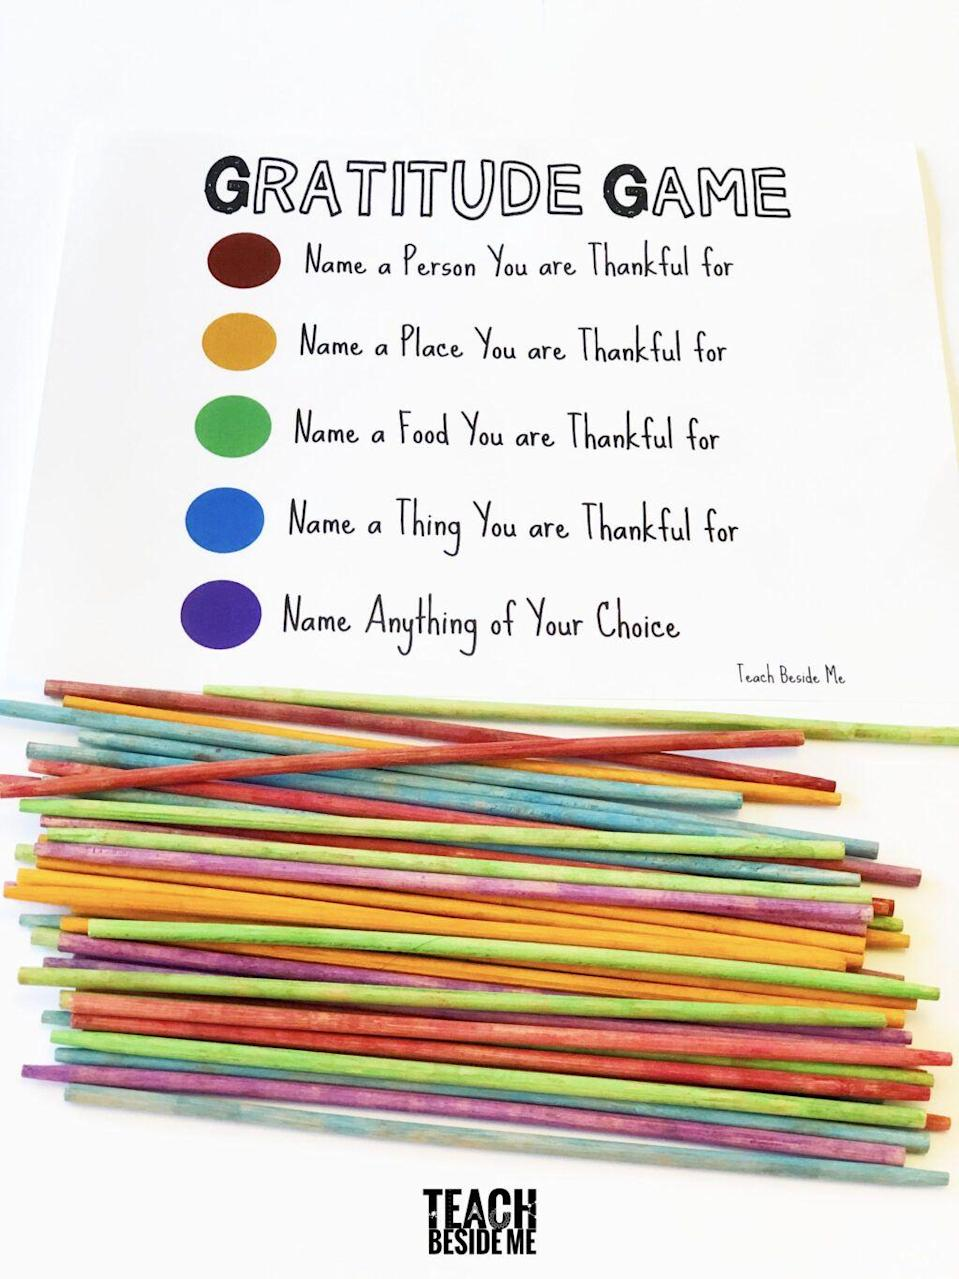 """<p>Since Thanksgiving is the perfect time to reflect on what you're most grateful for, this gratitude game is right on theme. This twist on pick-up sticks can be recreated with your choosing of each category.</p><p><strong>Get the tutorial at <a href=""""https://teachbesideme.com/gratitude-game-pick-sticks"""" rel=""""nofollow noopener"""" target=""""_blank"""" data-ylk=""""slk:Teach Beside Me"""" class=""""link rapid-noclick-resp"""">Teach Beside Me</a>. </strong></p>"""